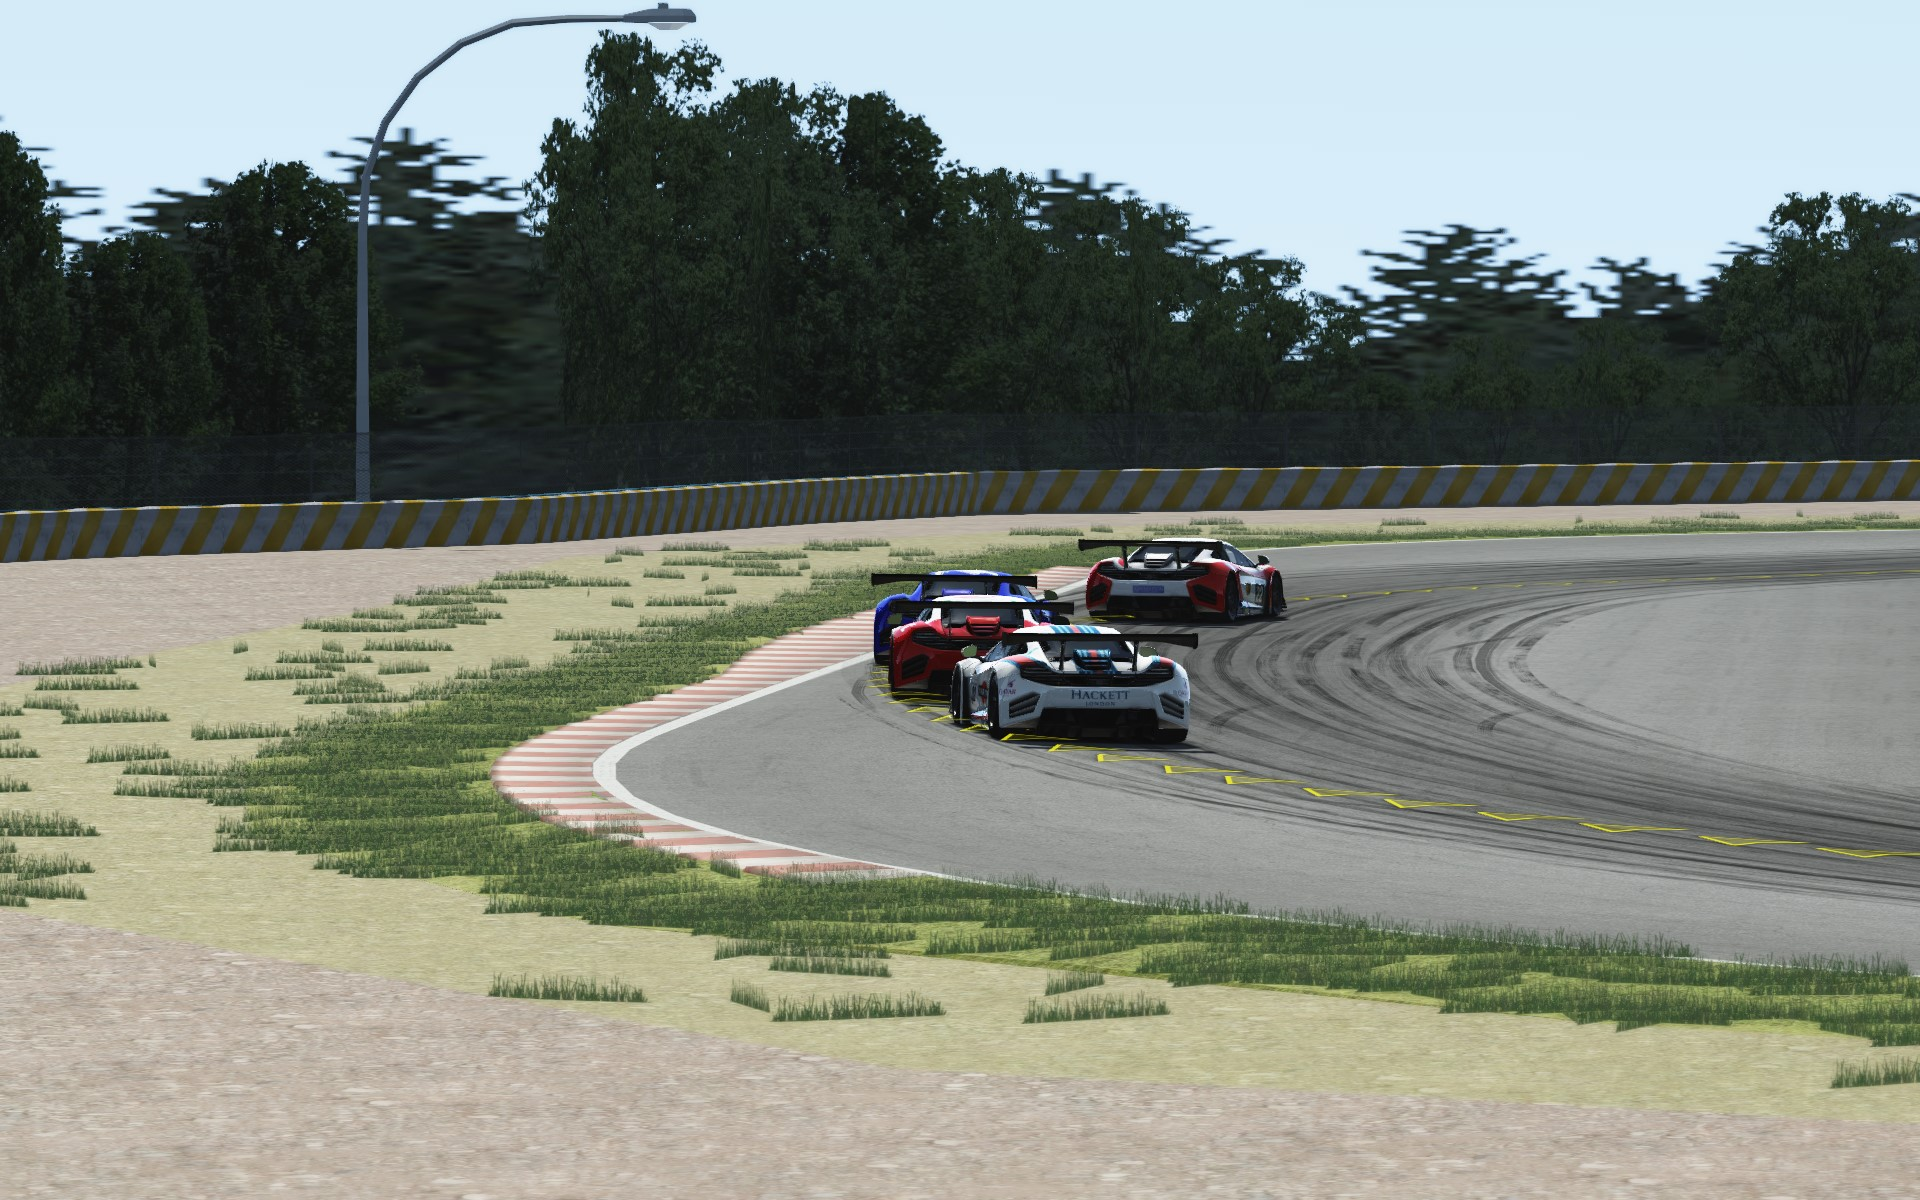 Screenshot_mclaren_mp412c_gt3_sentul_circuit_30-7-115-12-48-3.jpg